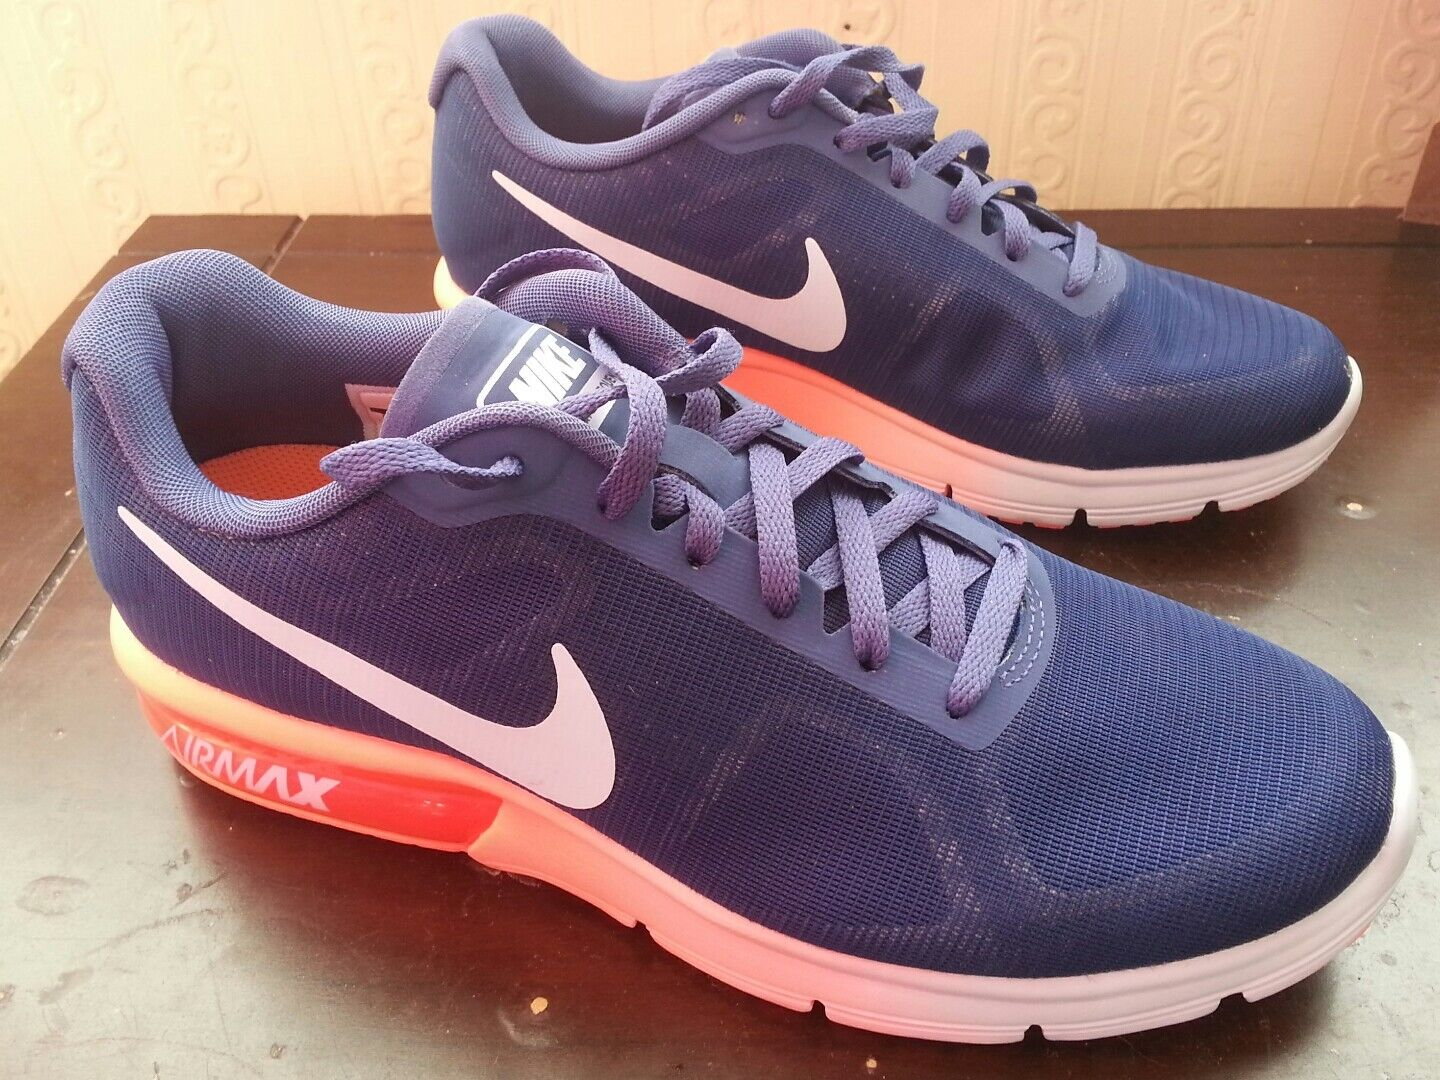 Worn twice trainersNIKE AIR MAX SEQUENT   size CM 24  come to choose your own sports style